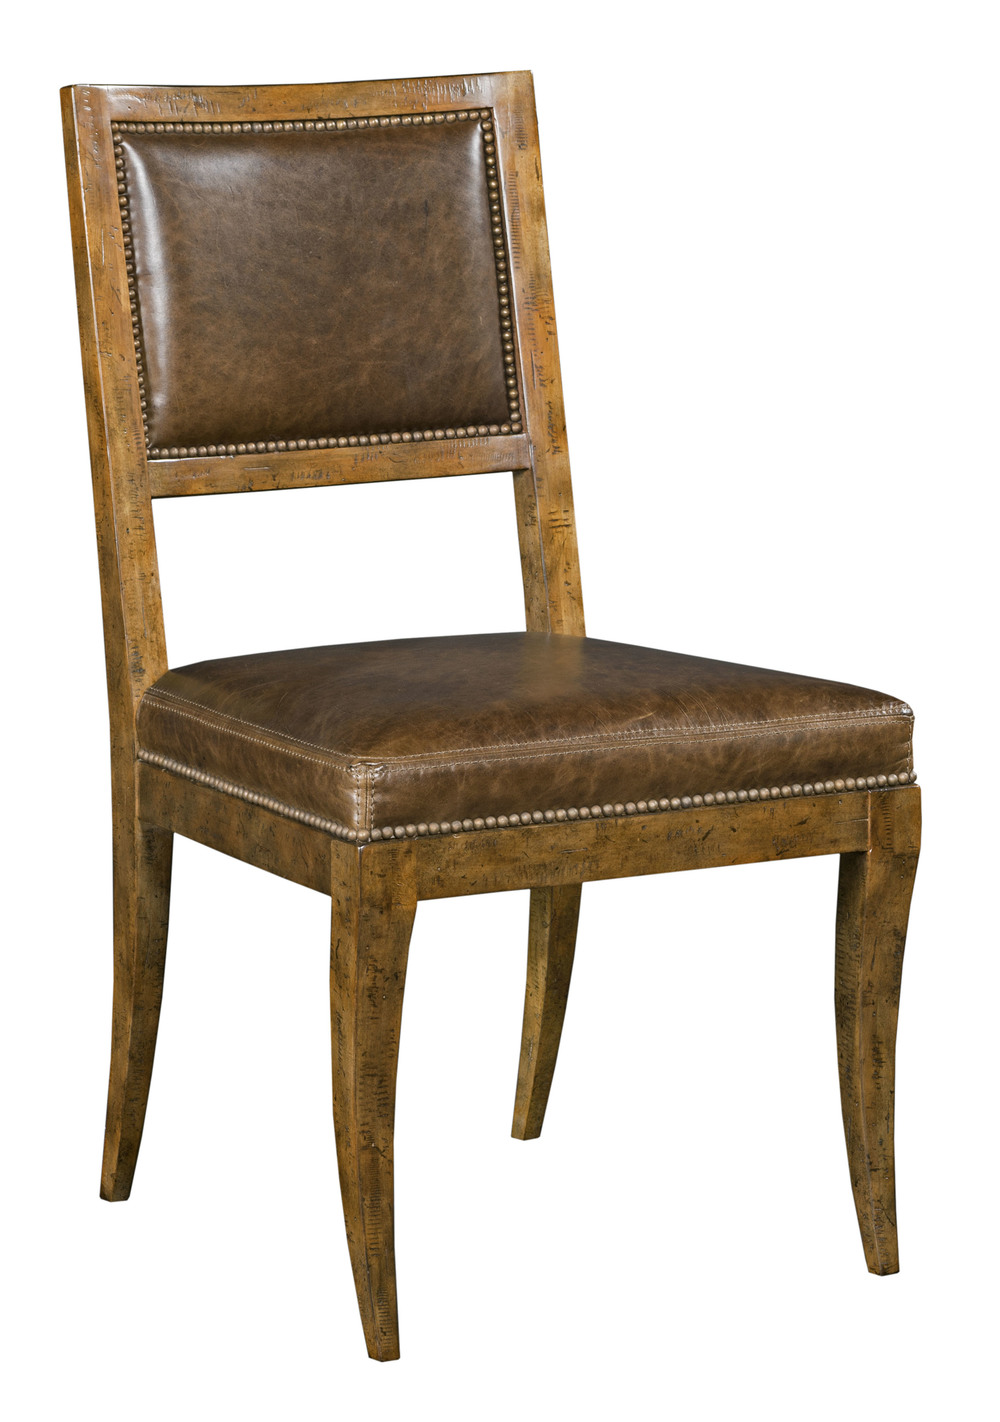 Woodbridge Furniture Company - Sonoma Dining Side Chair